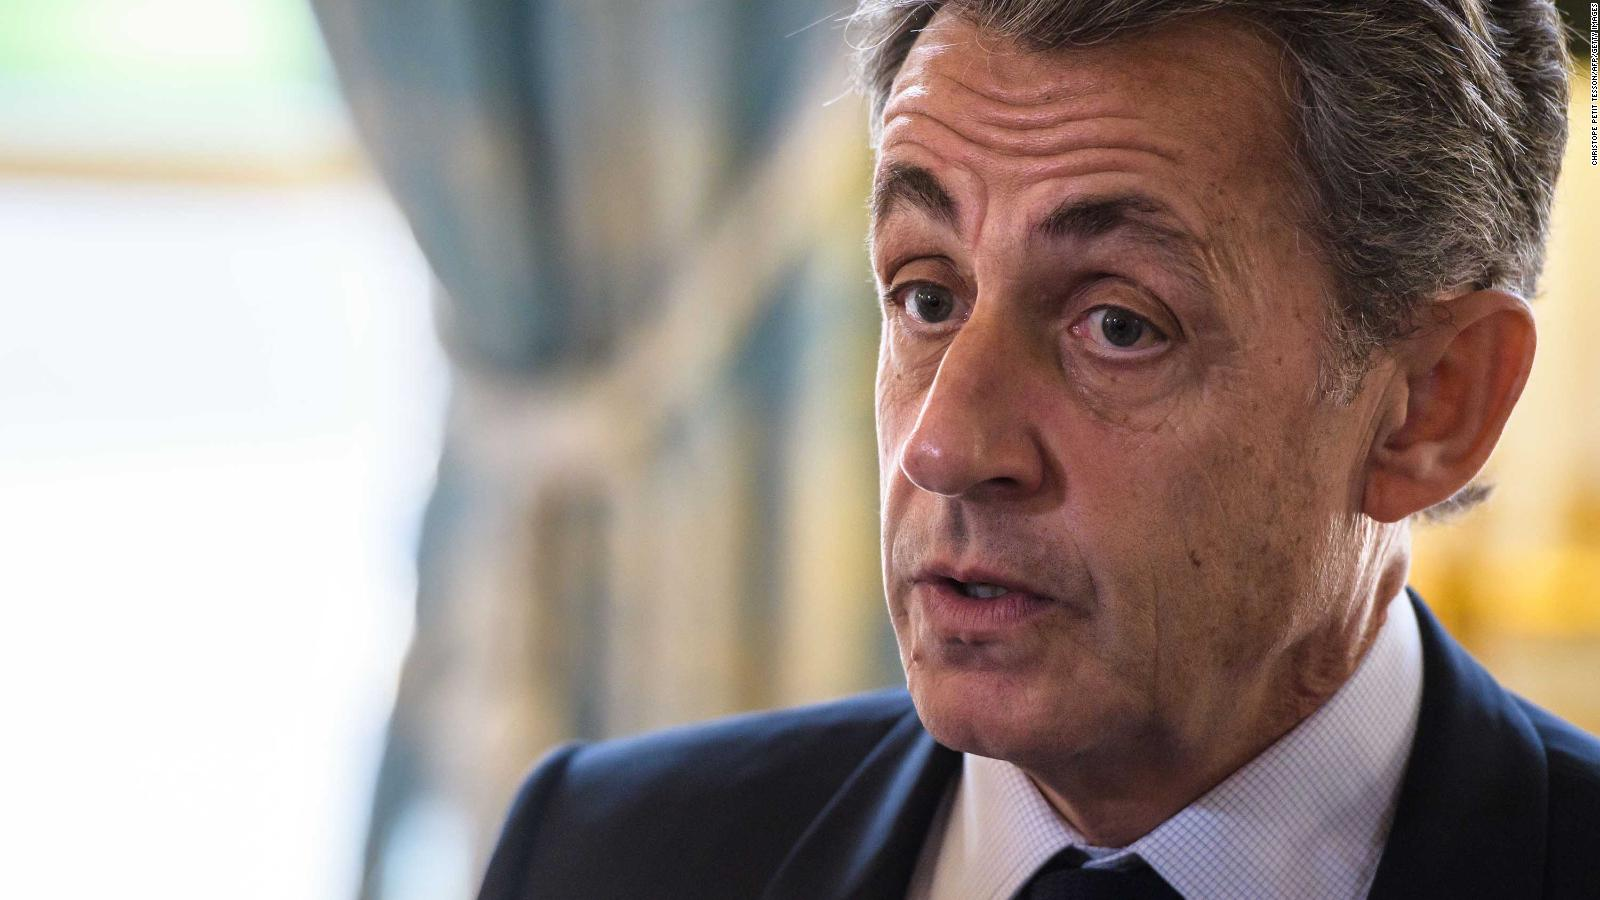 Former French President Nicolas Sarkozy I Am Accused Without Physical Evidence Cnn